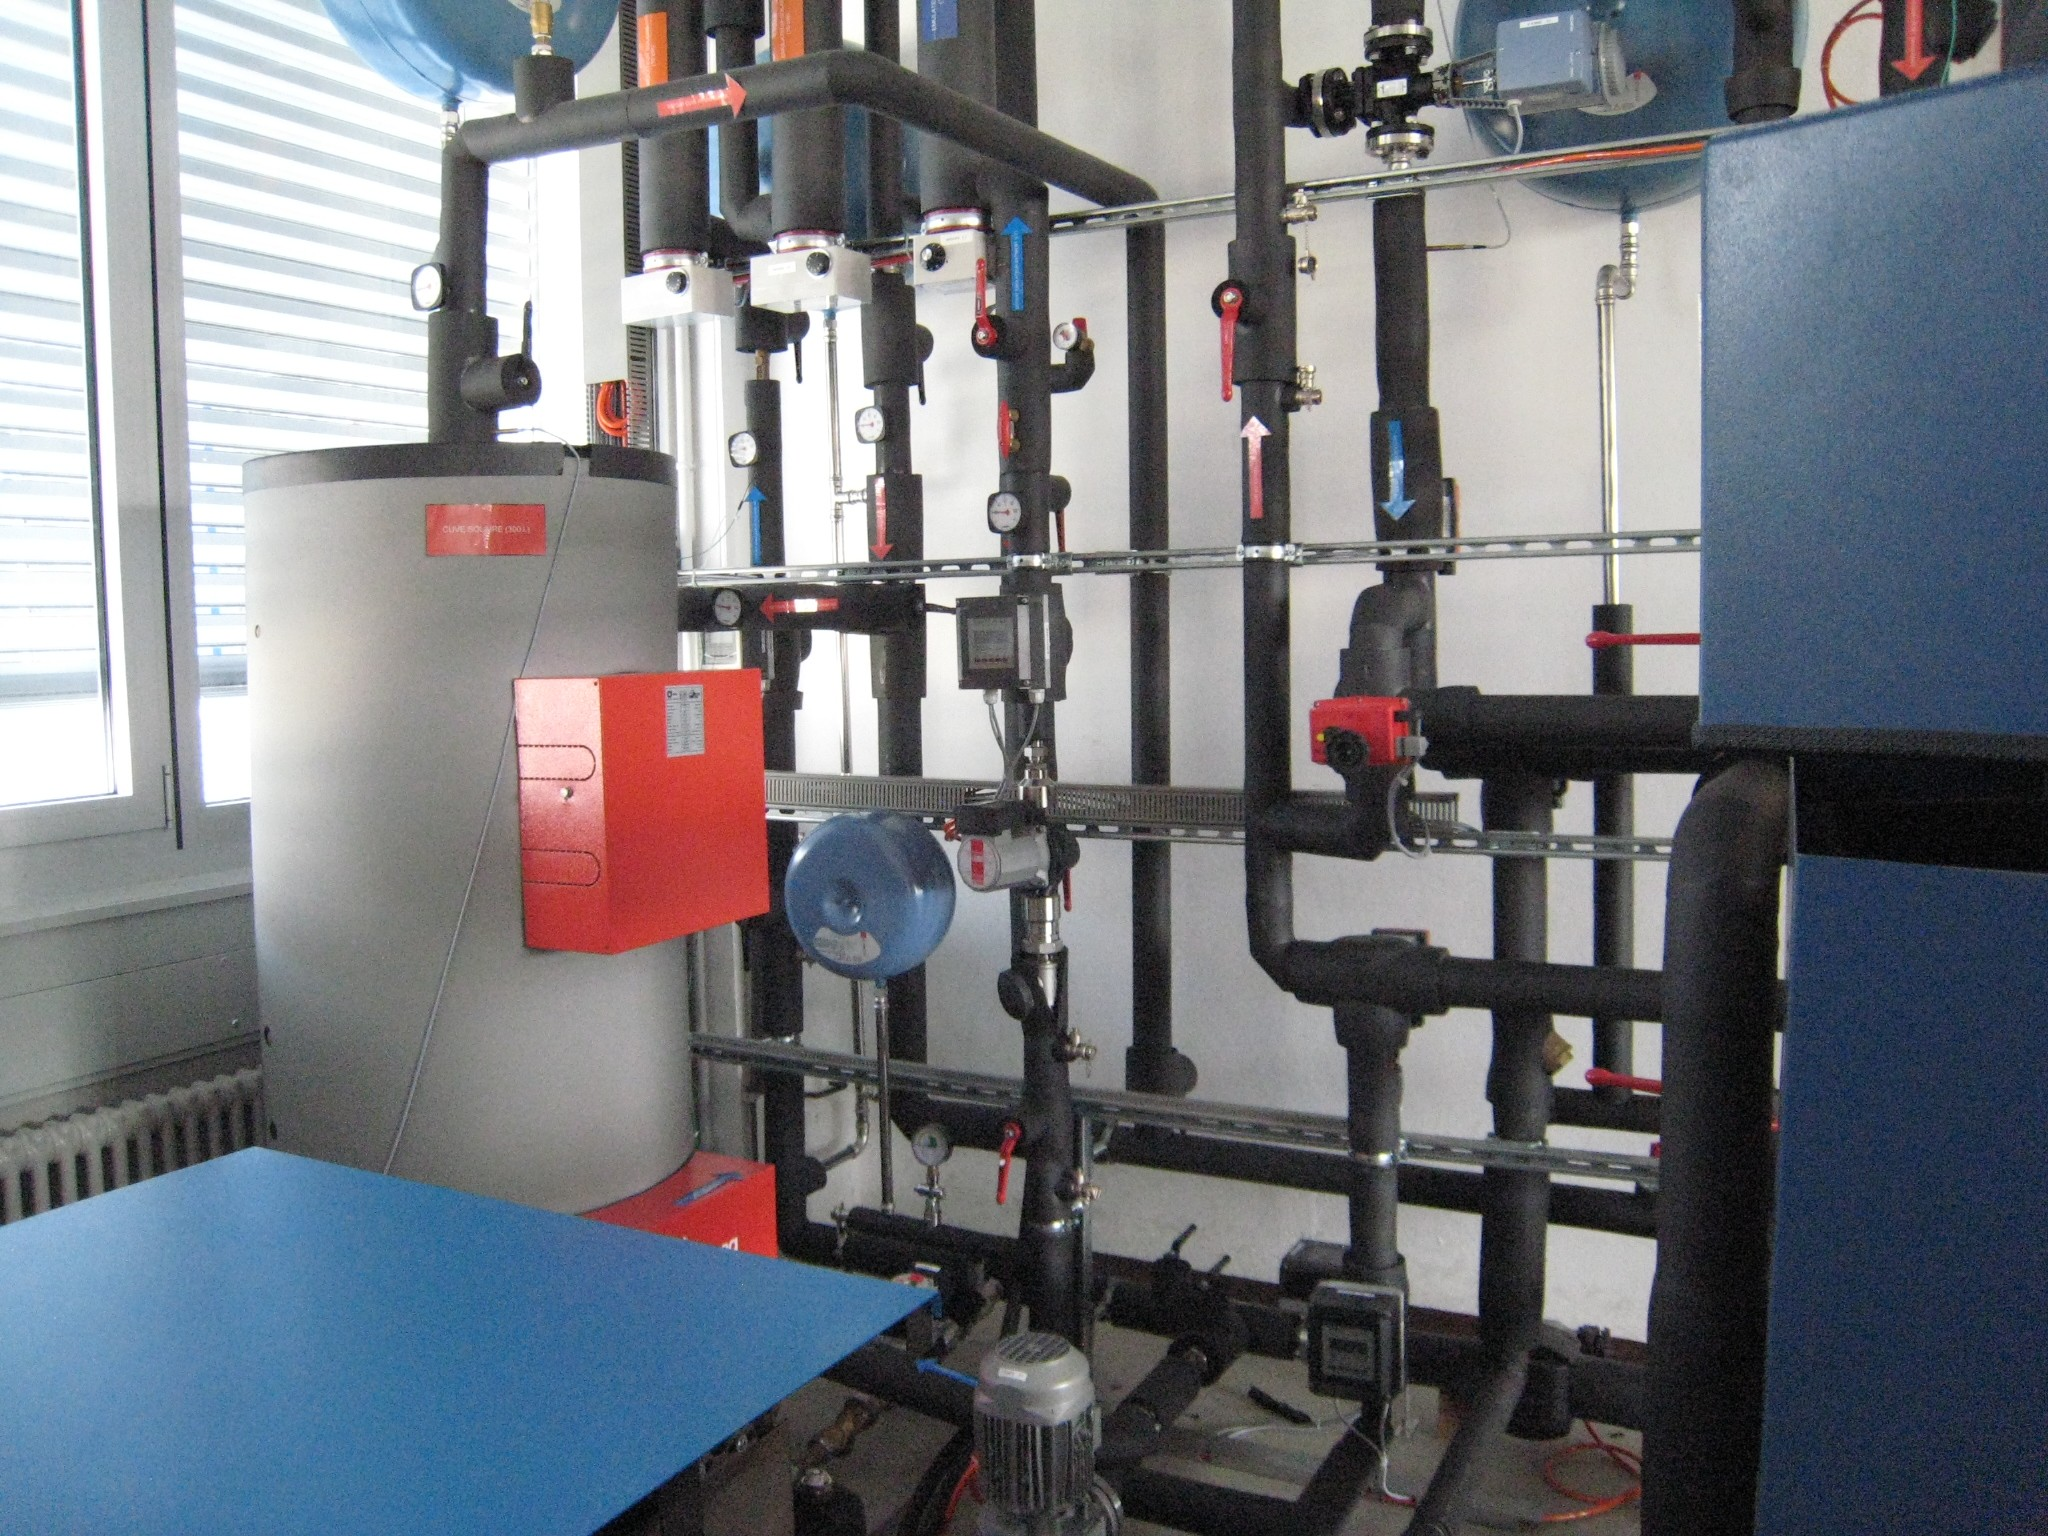 For experiments in the laboratory: the thermohydraulic system simulates the functioning of an adsorption heat pump.